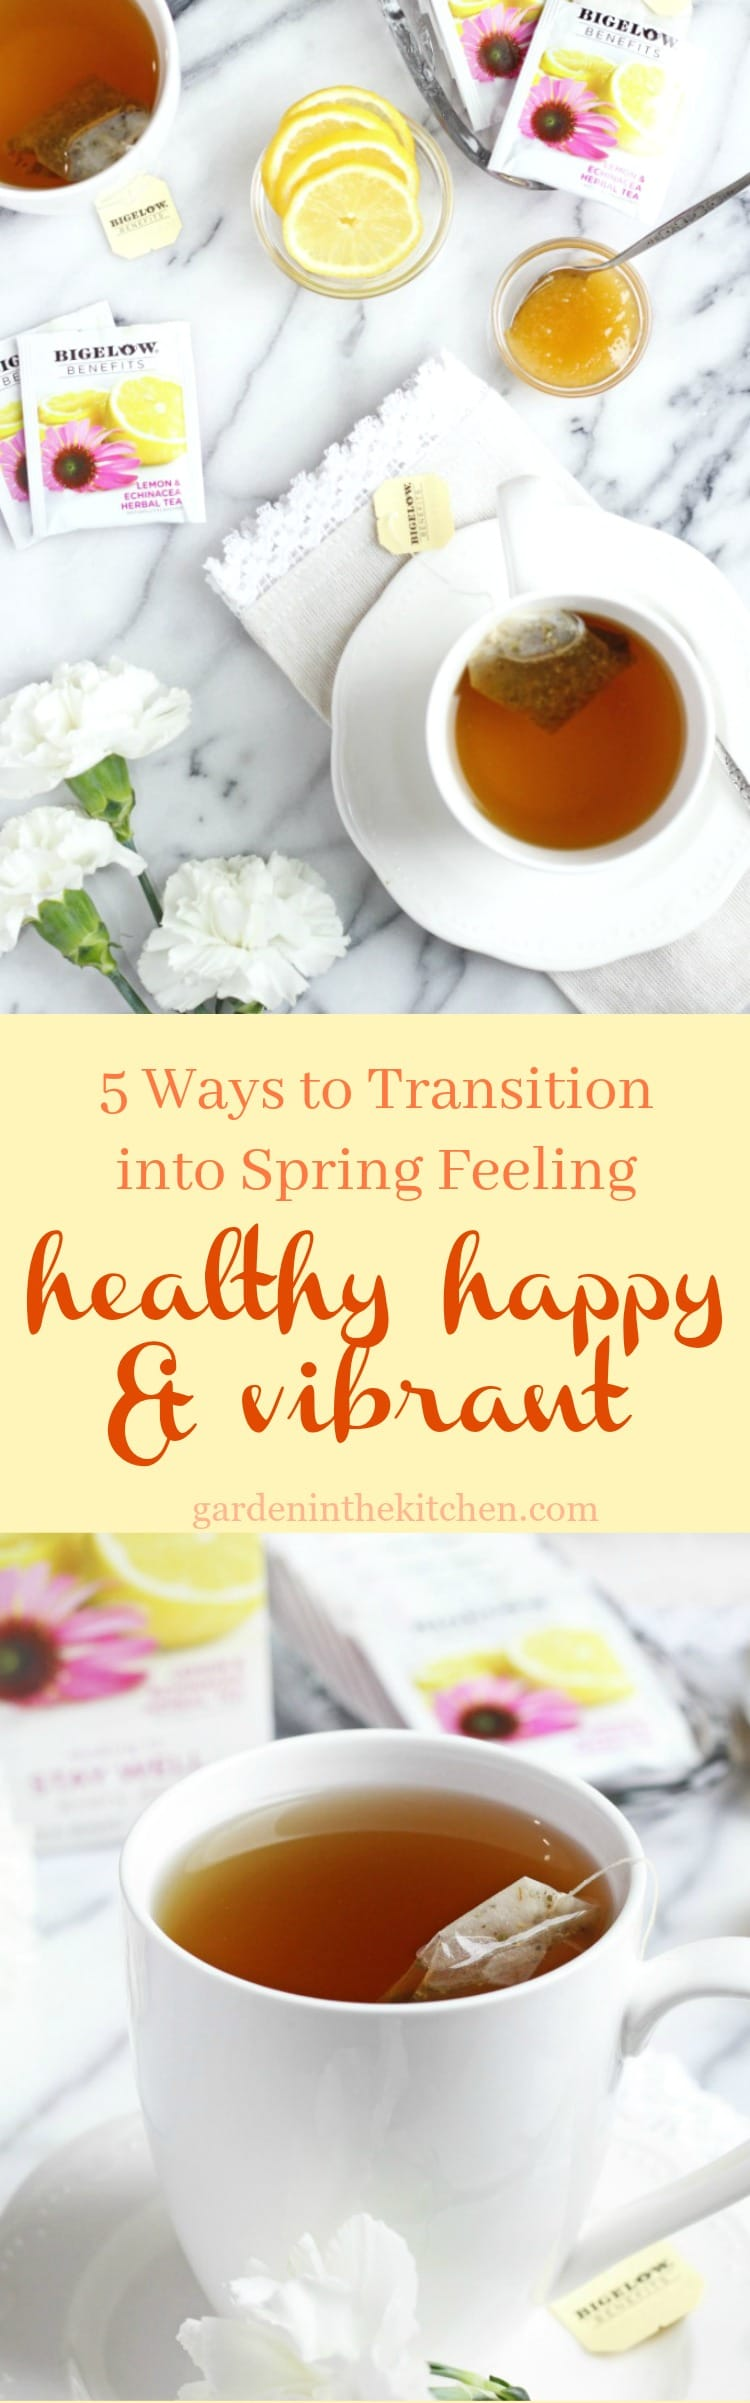 5 Ways to Transition into Spring Feeling Healthy Happy & Vibrant!